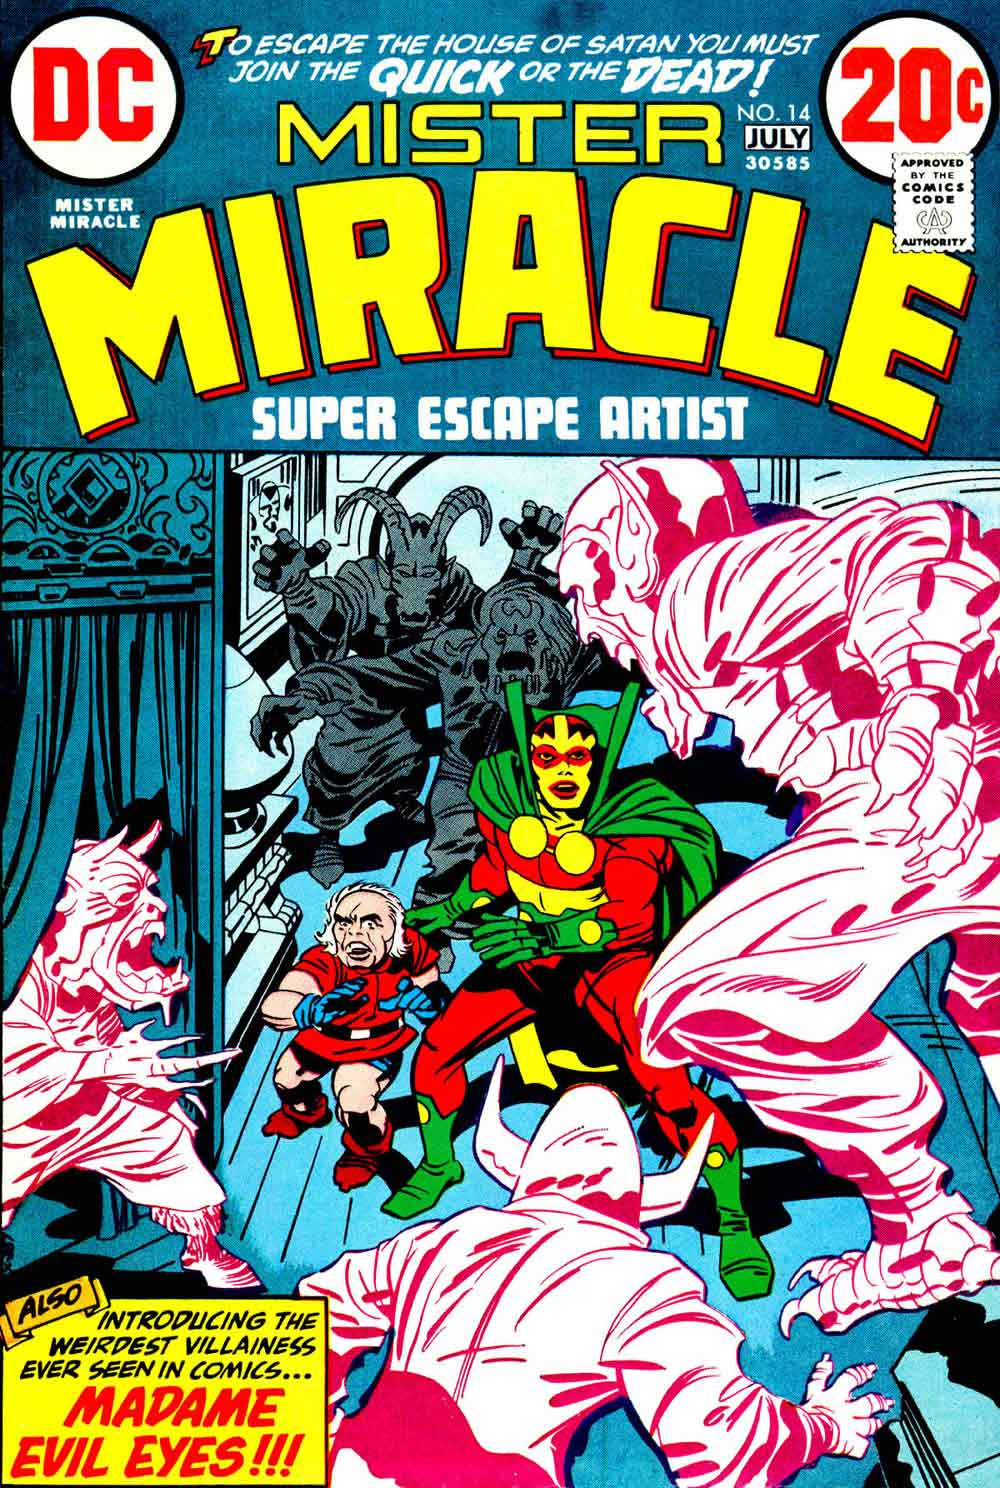 Mister Miracle v1 #14 dc bronze age comic book cover art by Jack Kirby